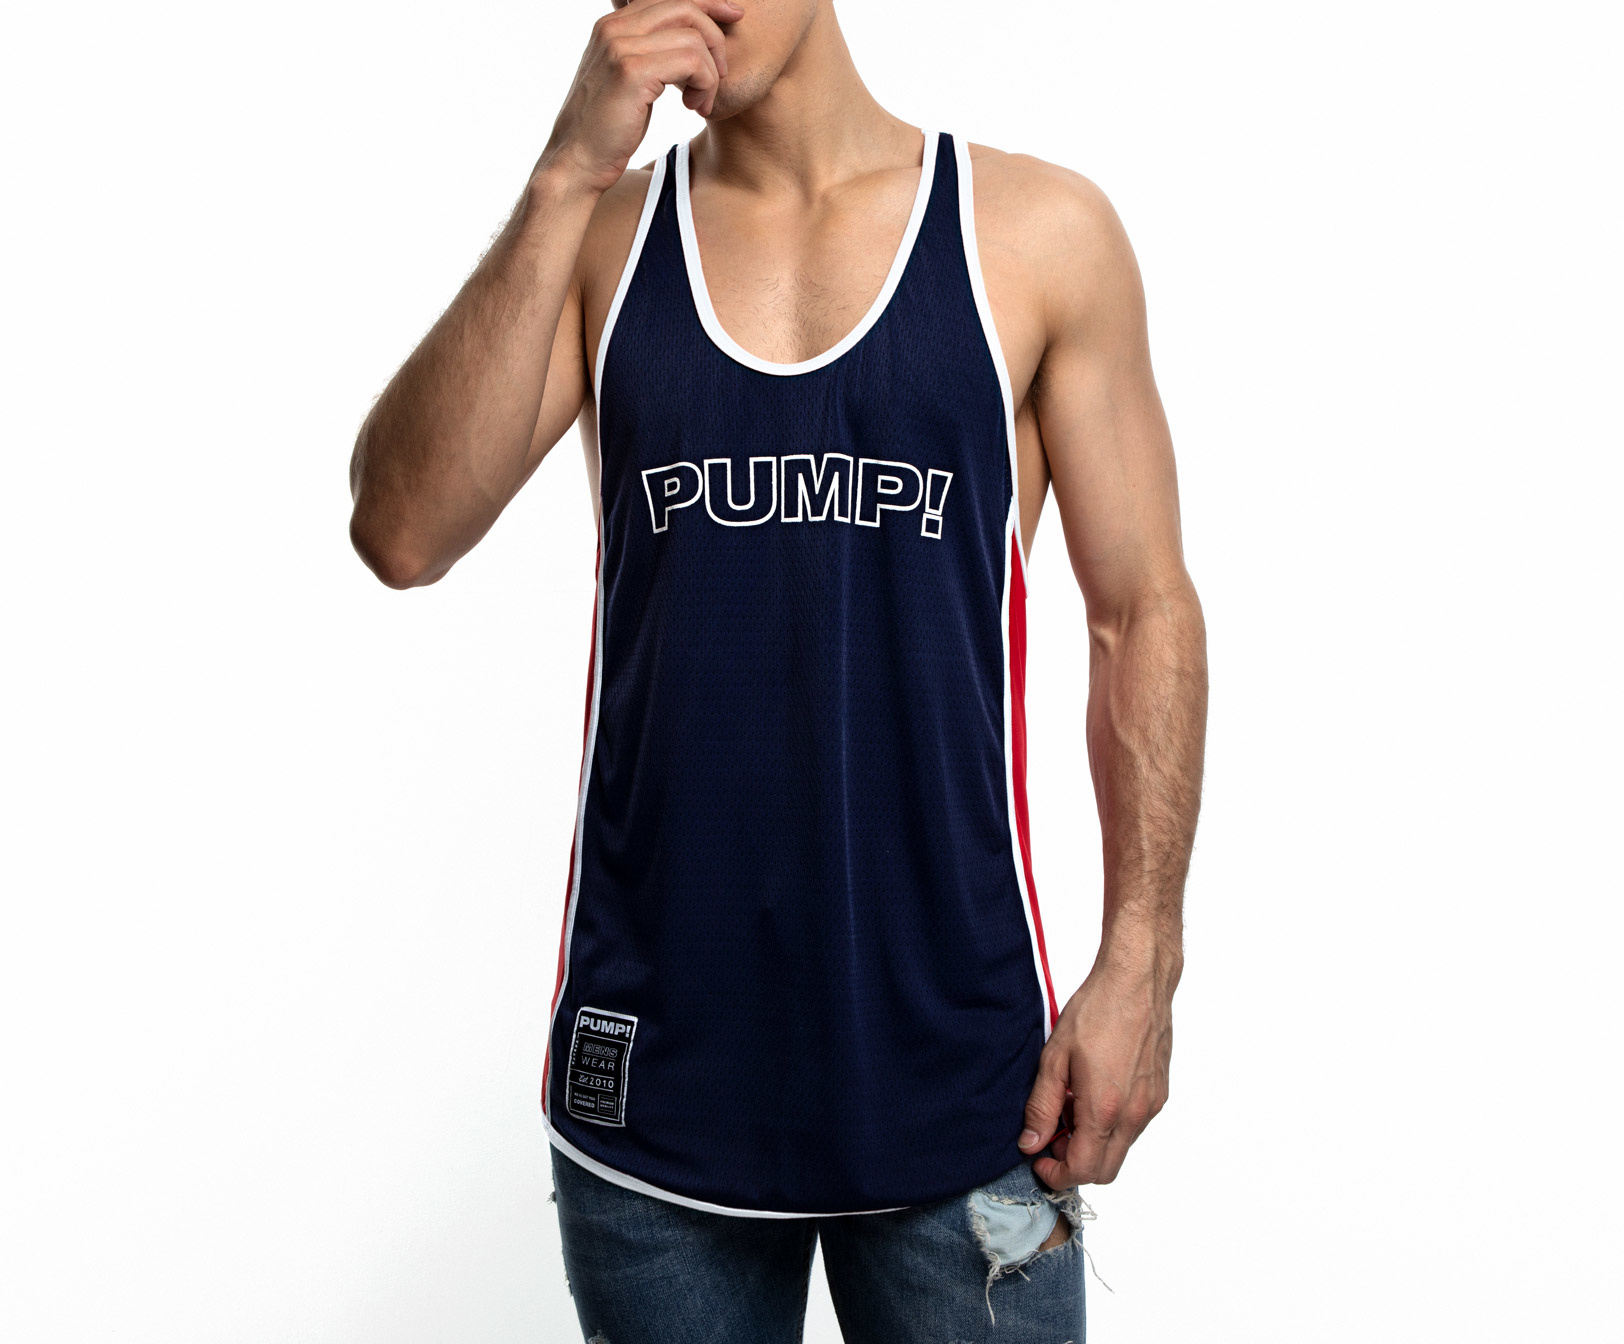 Pack of 3 Force NXT Mens Multi-Colored Pump Gym Vest